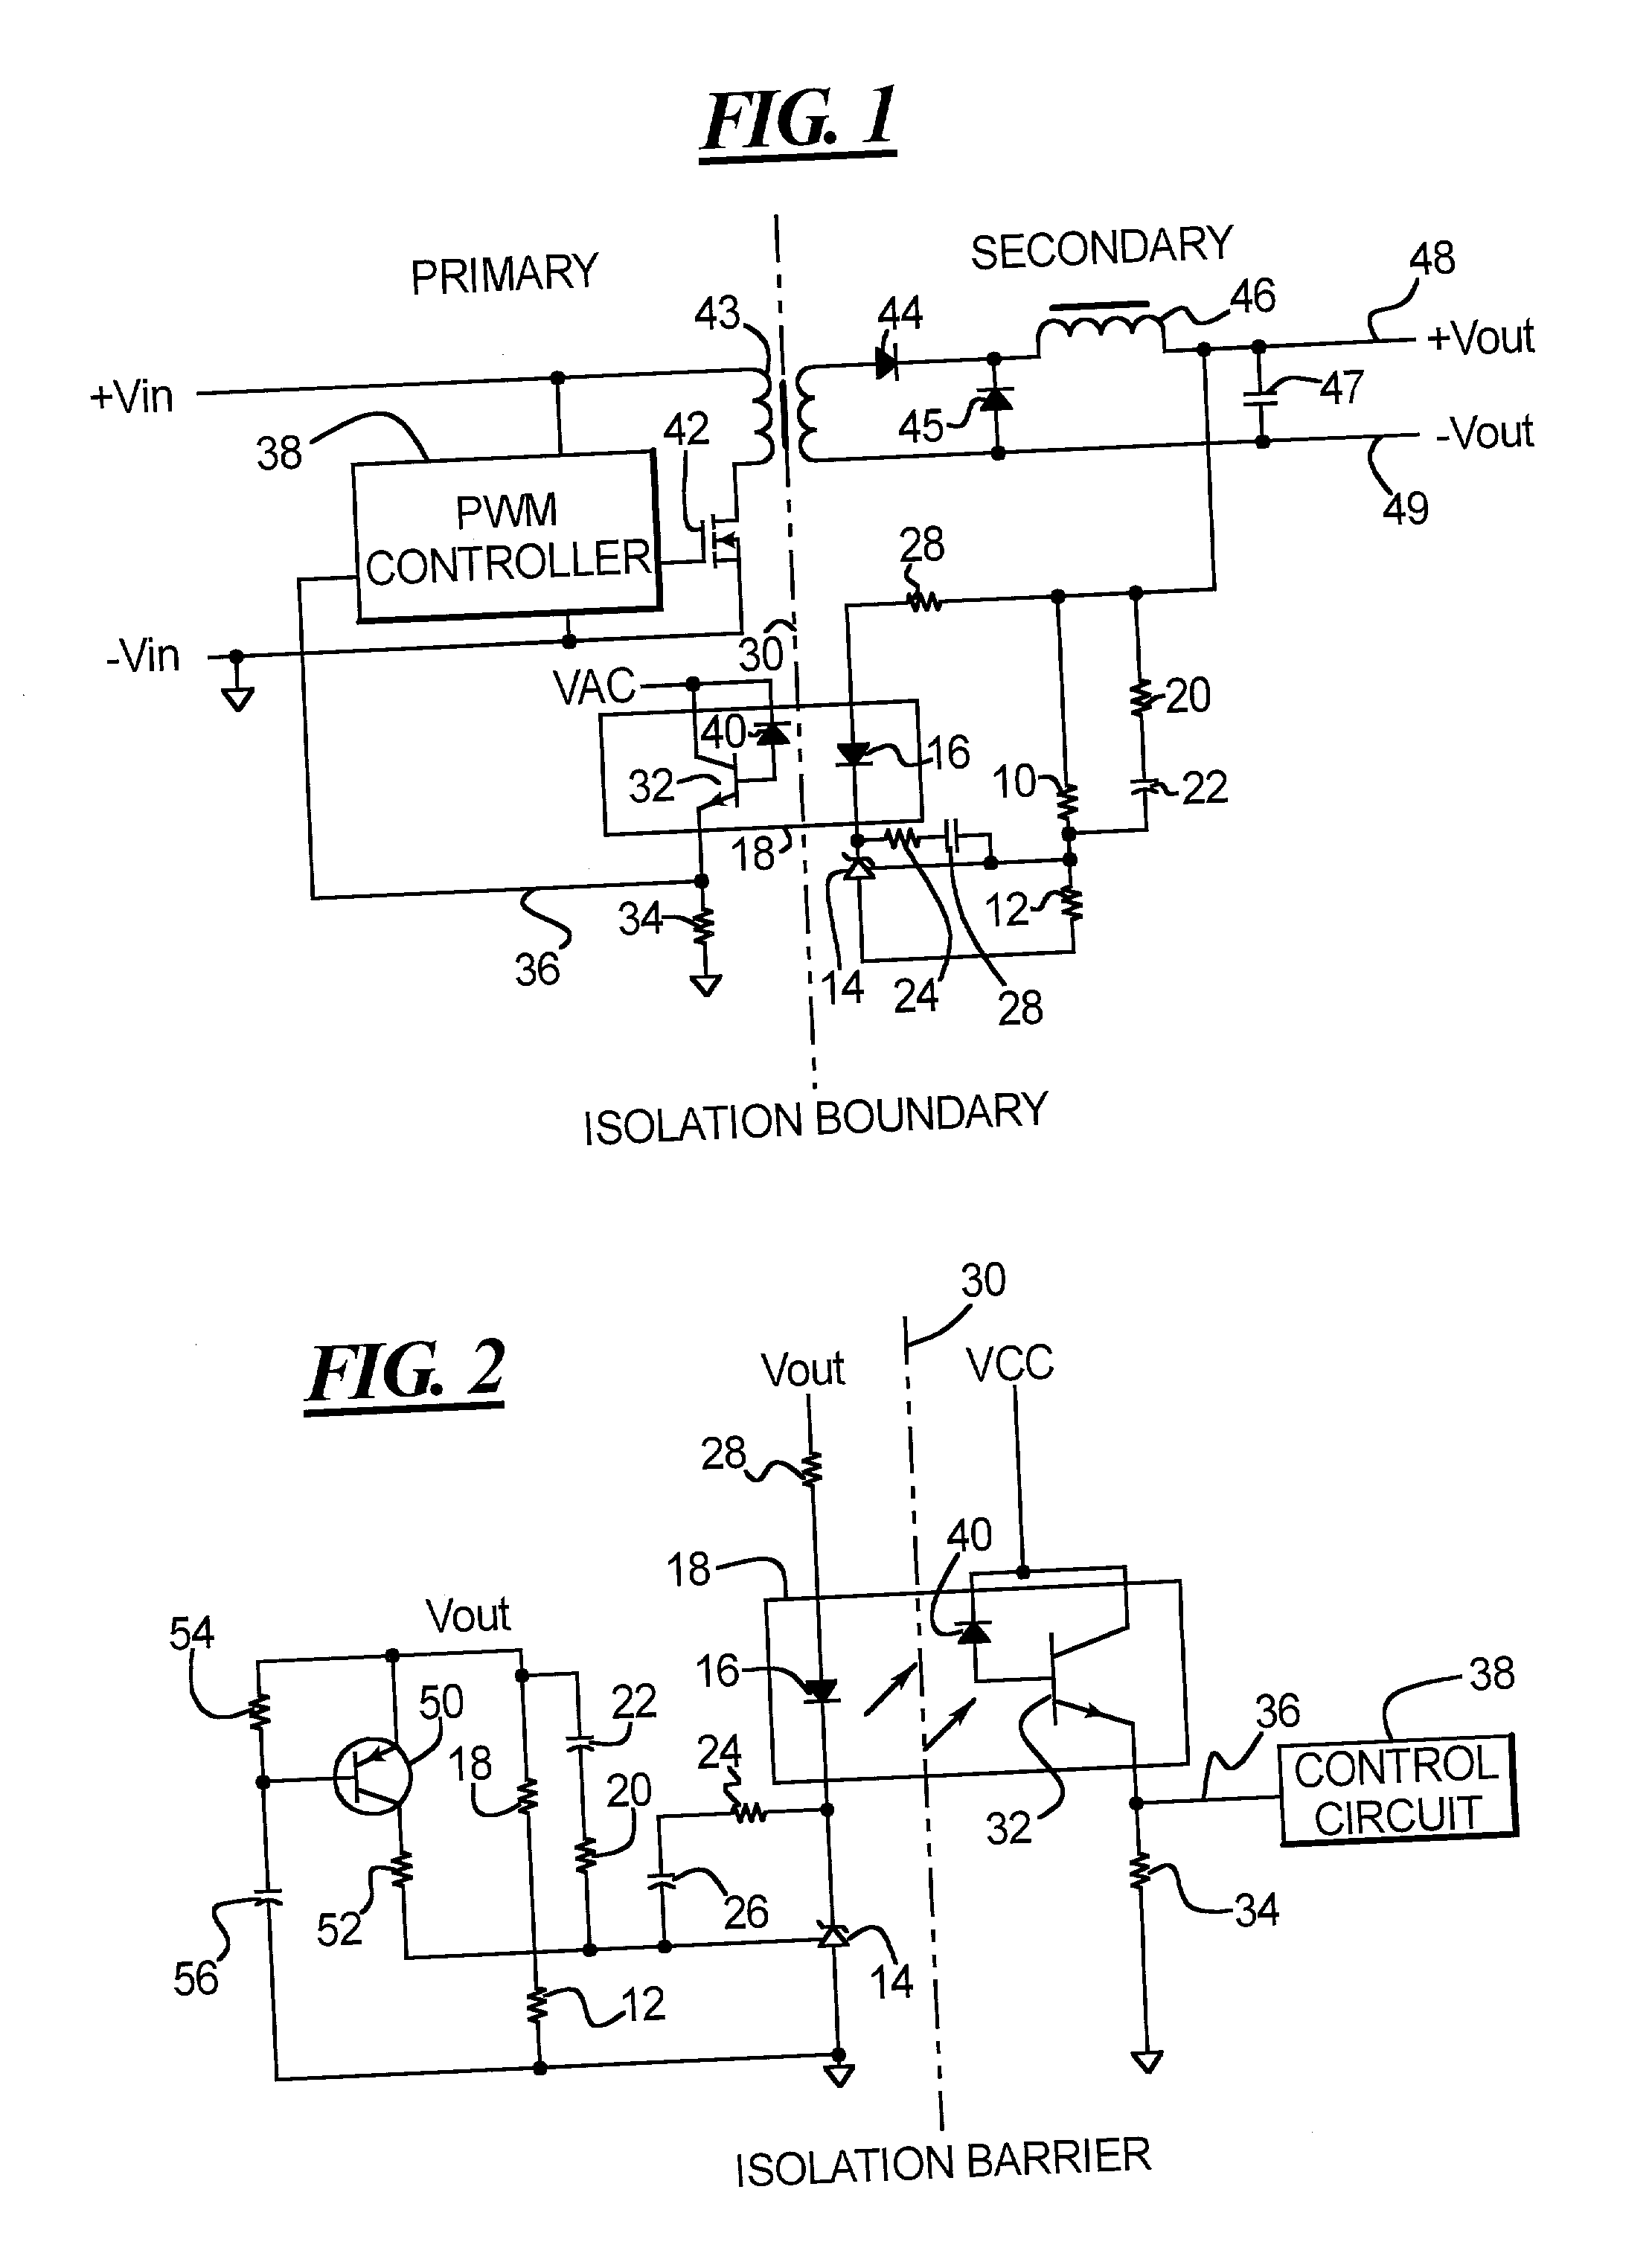 Patent Us20030156438 Soft Start Circuit For Regulated Power Supply Regulator With A Field Effect Transistor Circuits Drawing